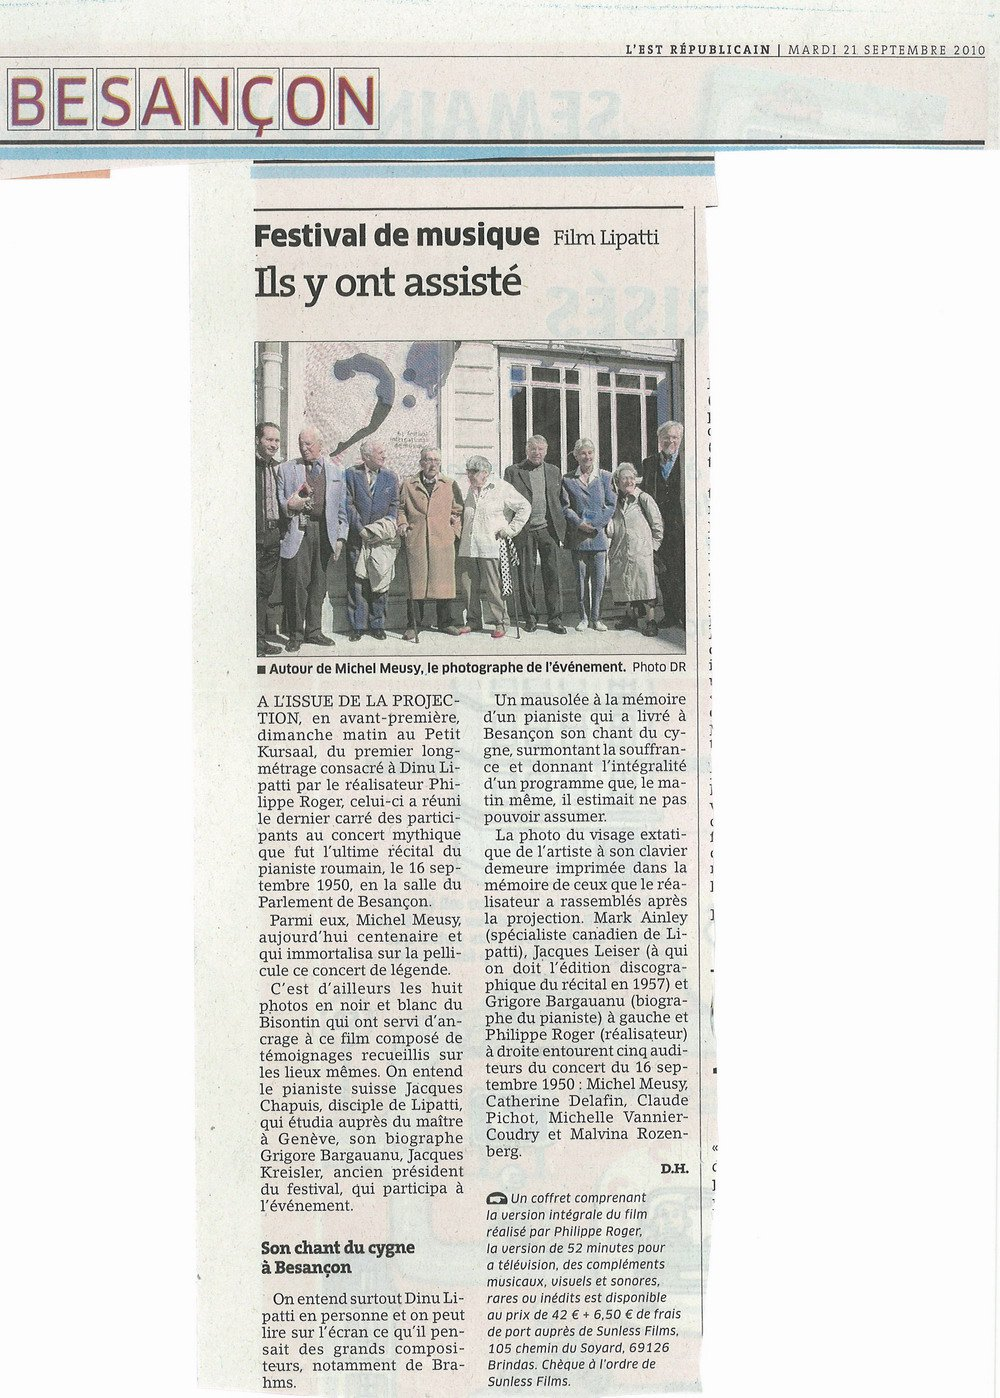 A news item about the screening of the film